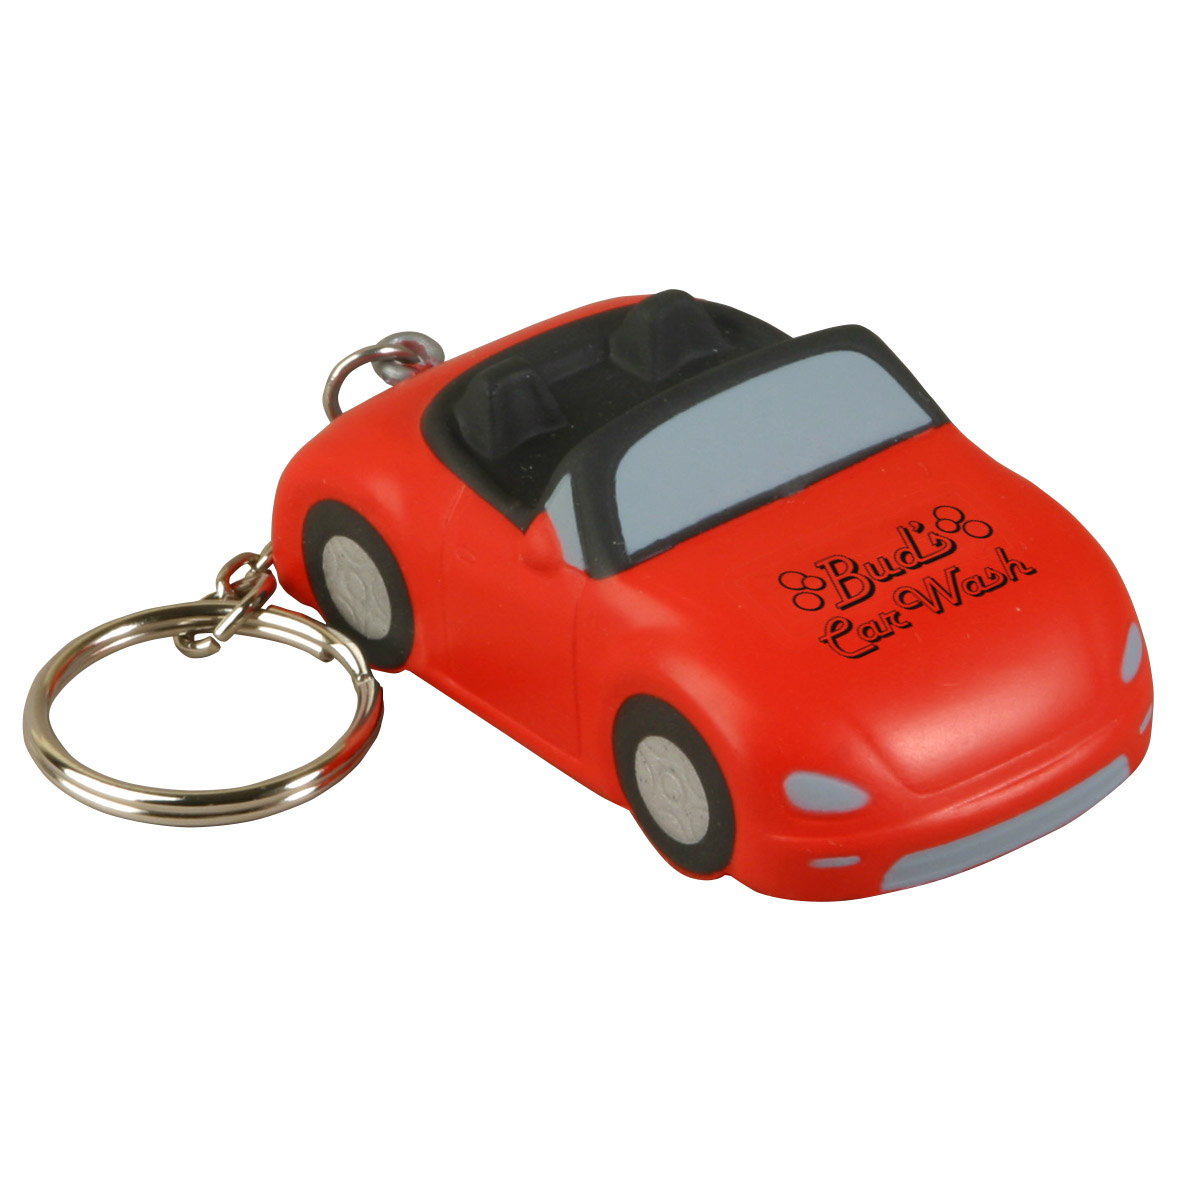 Convertible Car Stress Reliever Keychain, LKC-CV33 - 1 Colour Imprint